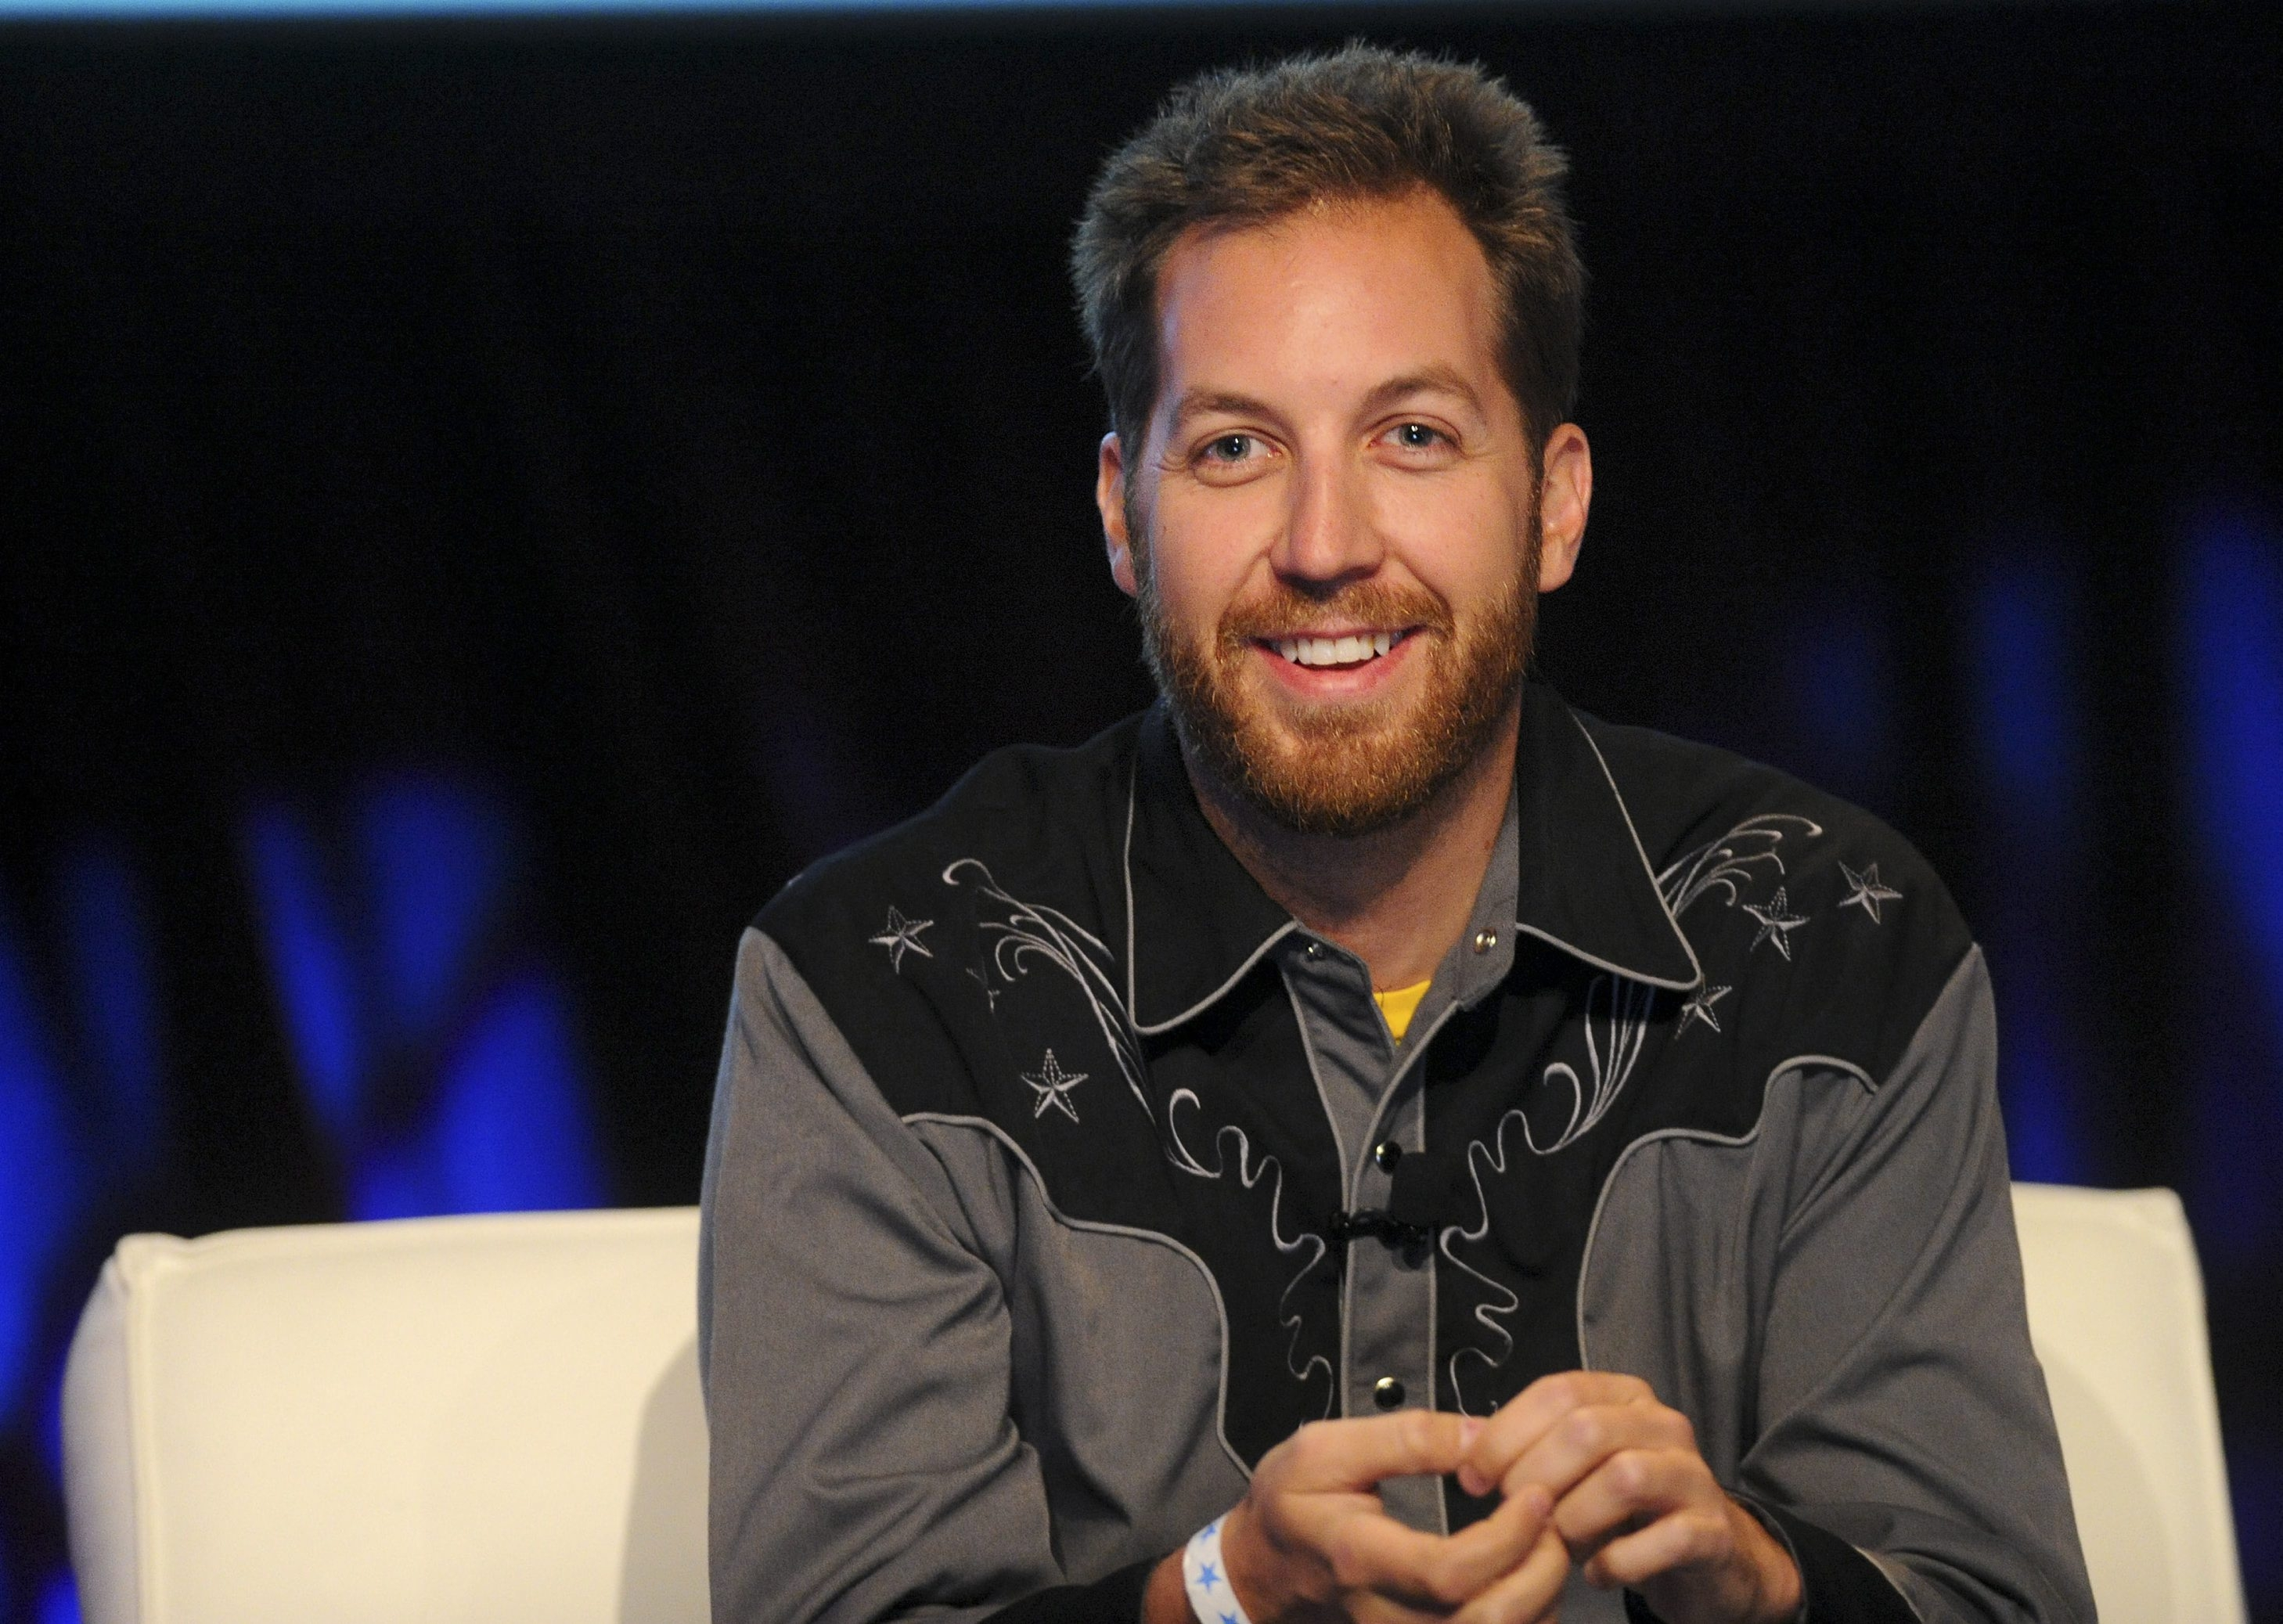 Lockport native Chris Sacca, founder of Lowercase Capital, was among 60 people across the country who joined forces to fund classroom projects through DonorsChoose.org. (Bloomberg file photo)